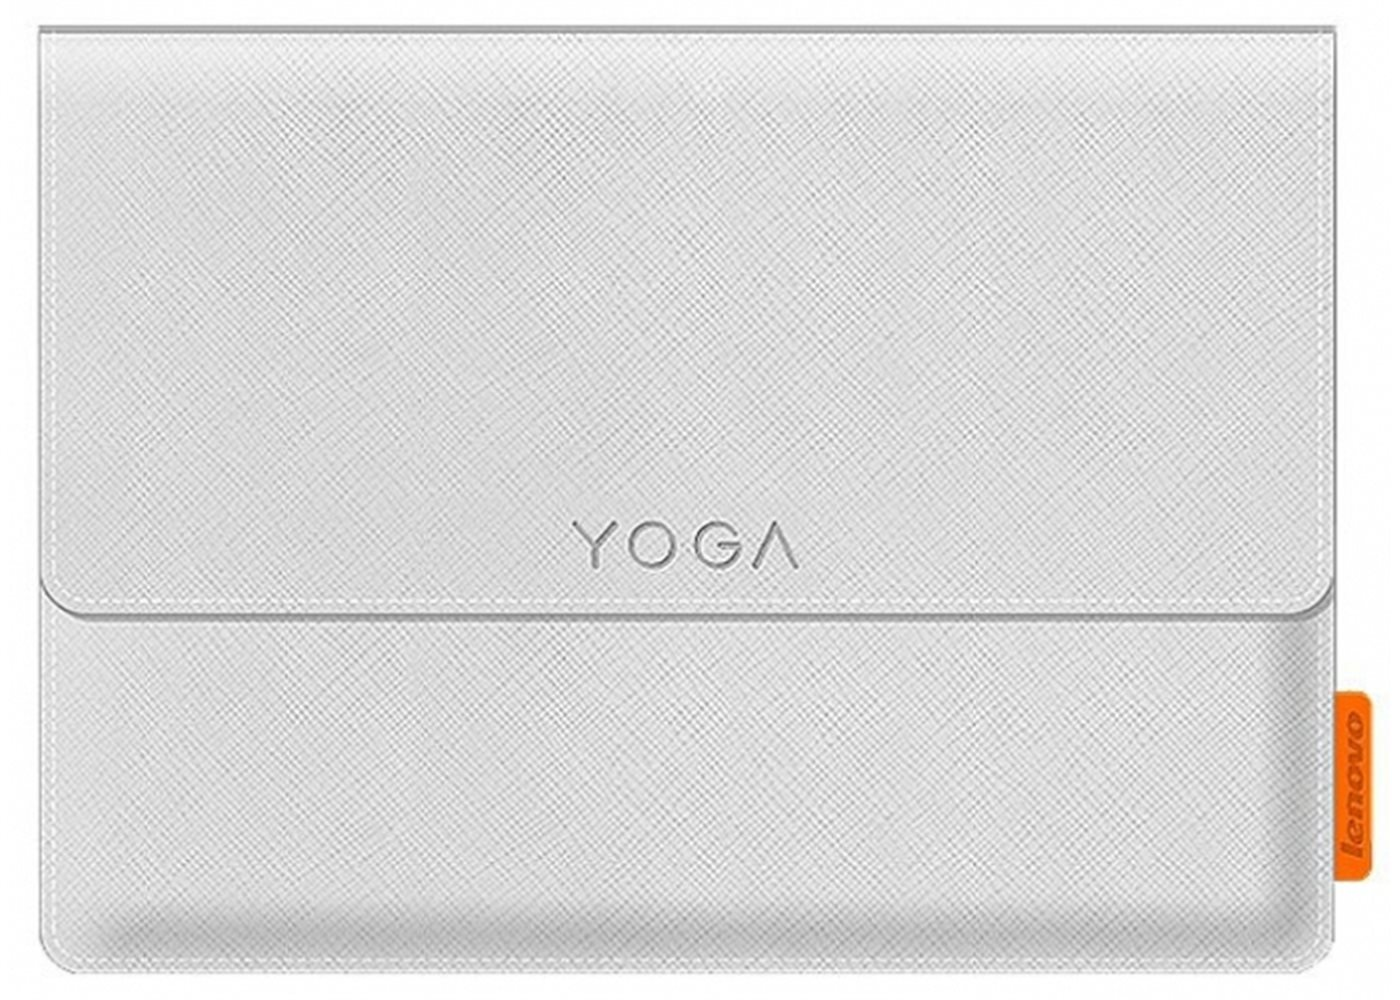 Yoga tablet3 8 sleeve and film-White